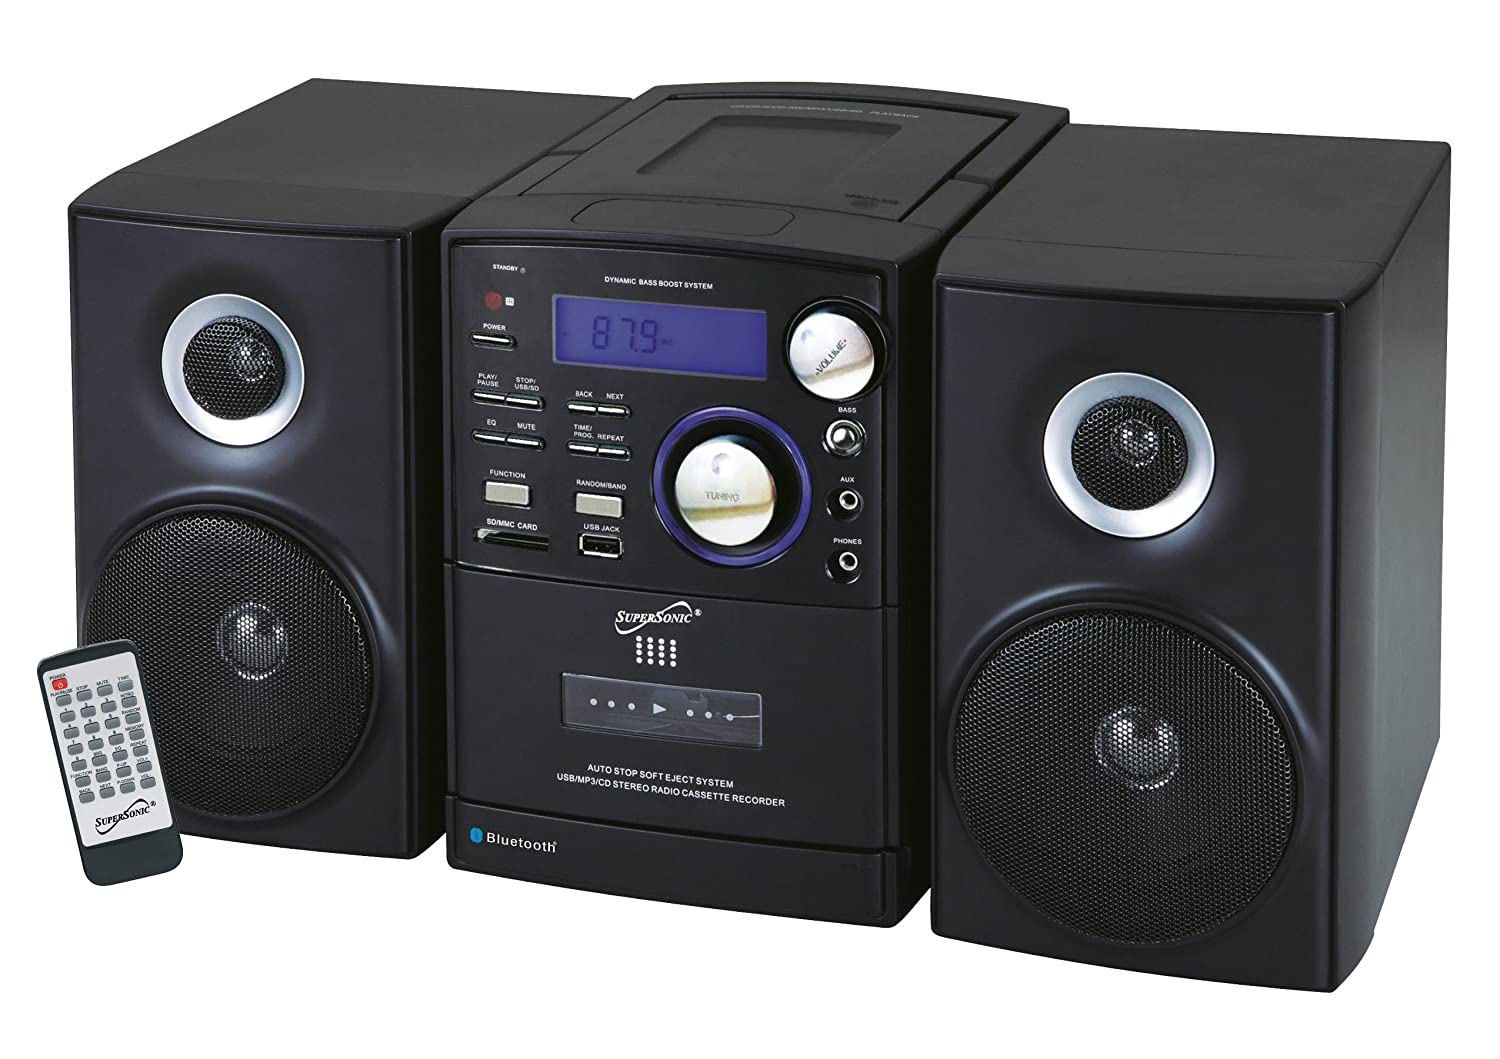 sound system with cd player. amazon.com: supersonic sc807 cd/mp3/cassette player: home audio \u0026 theater sound system with cd player d